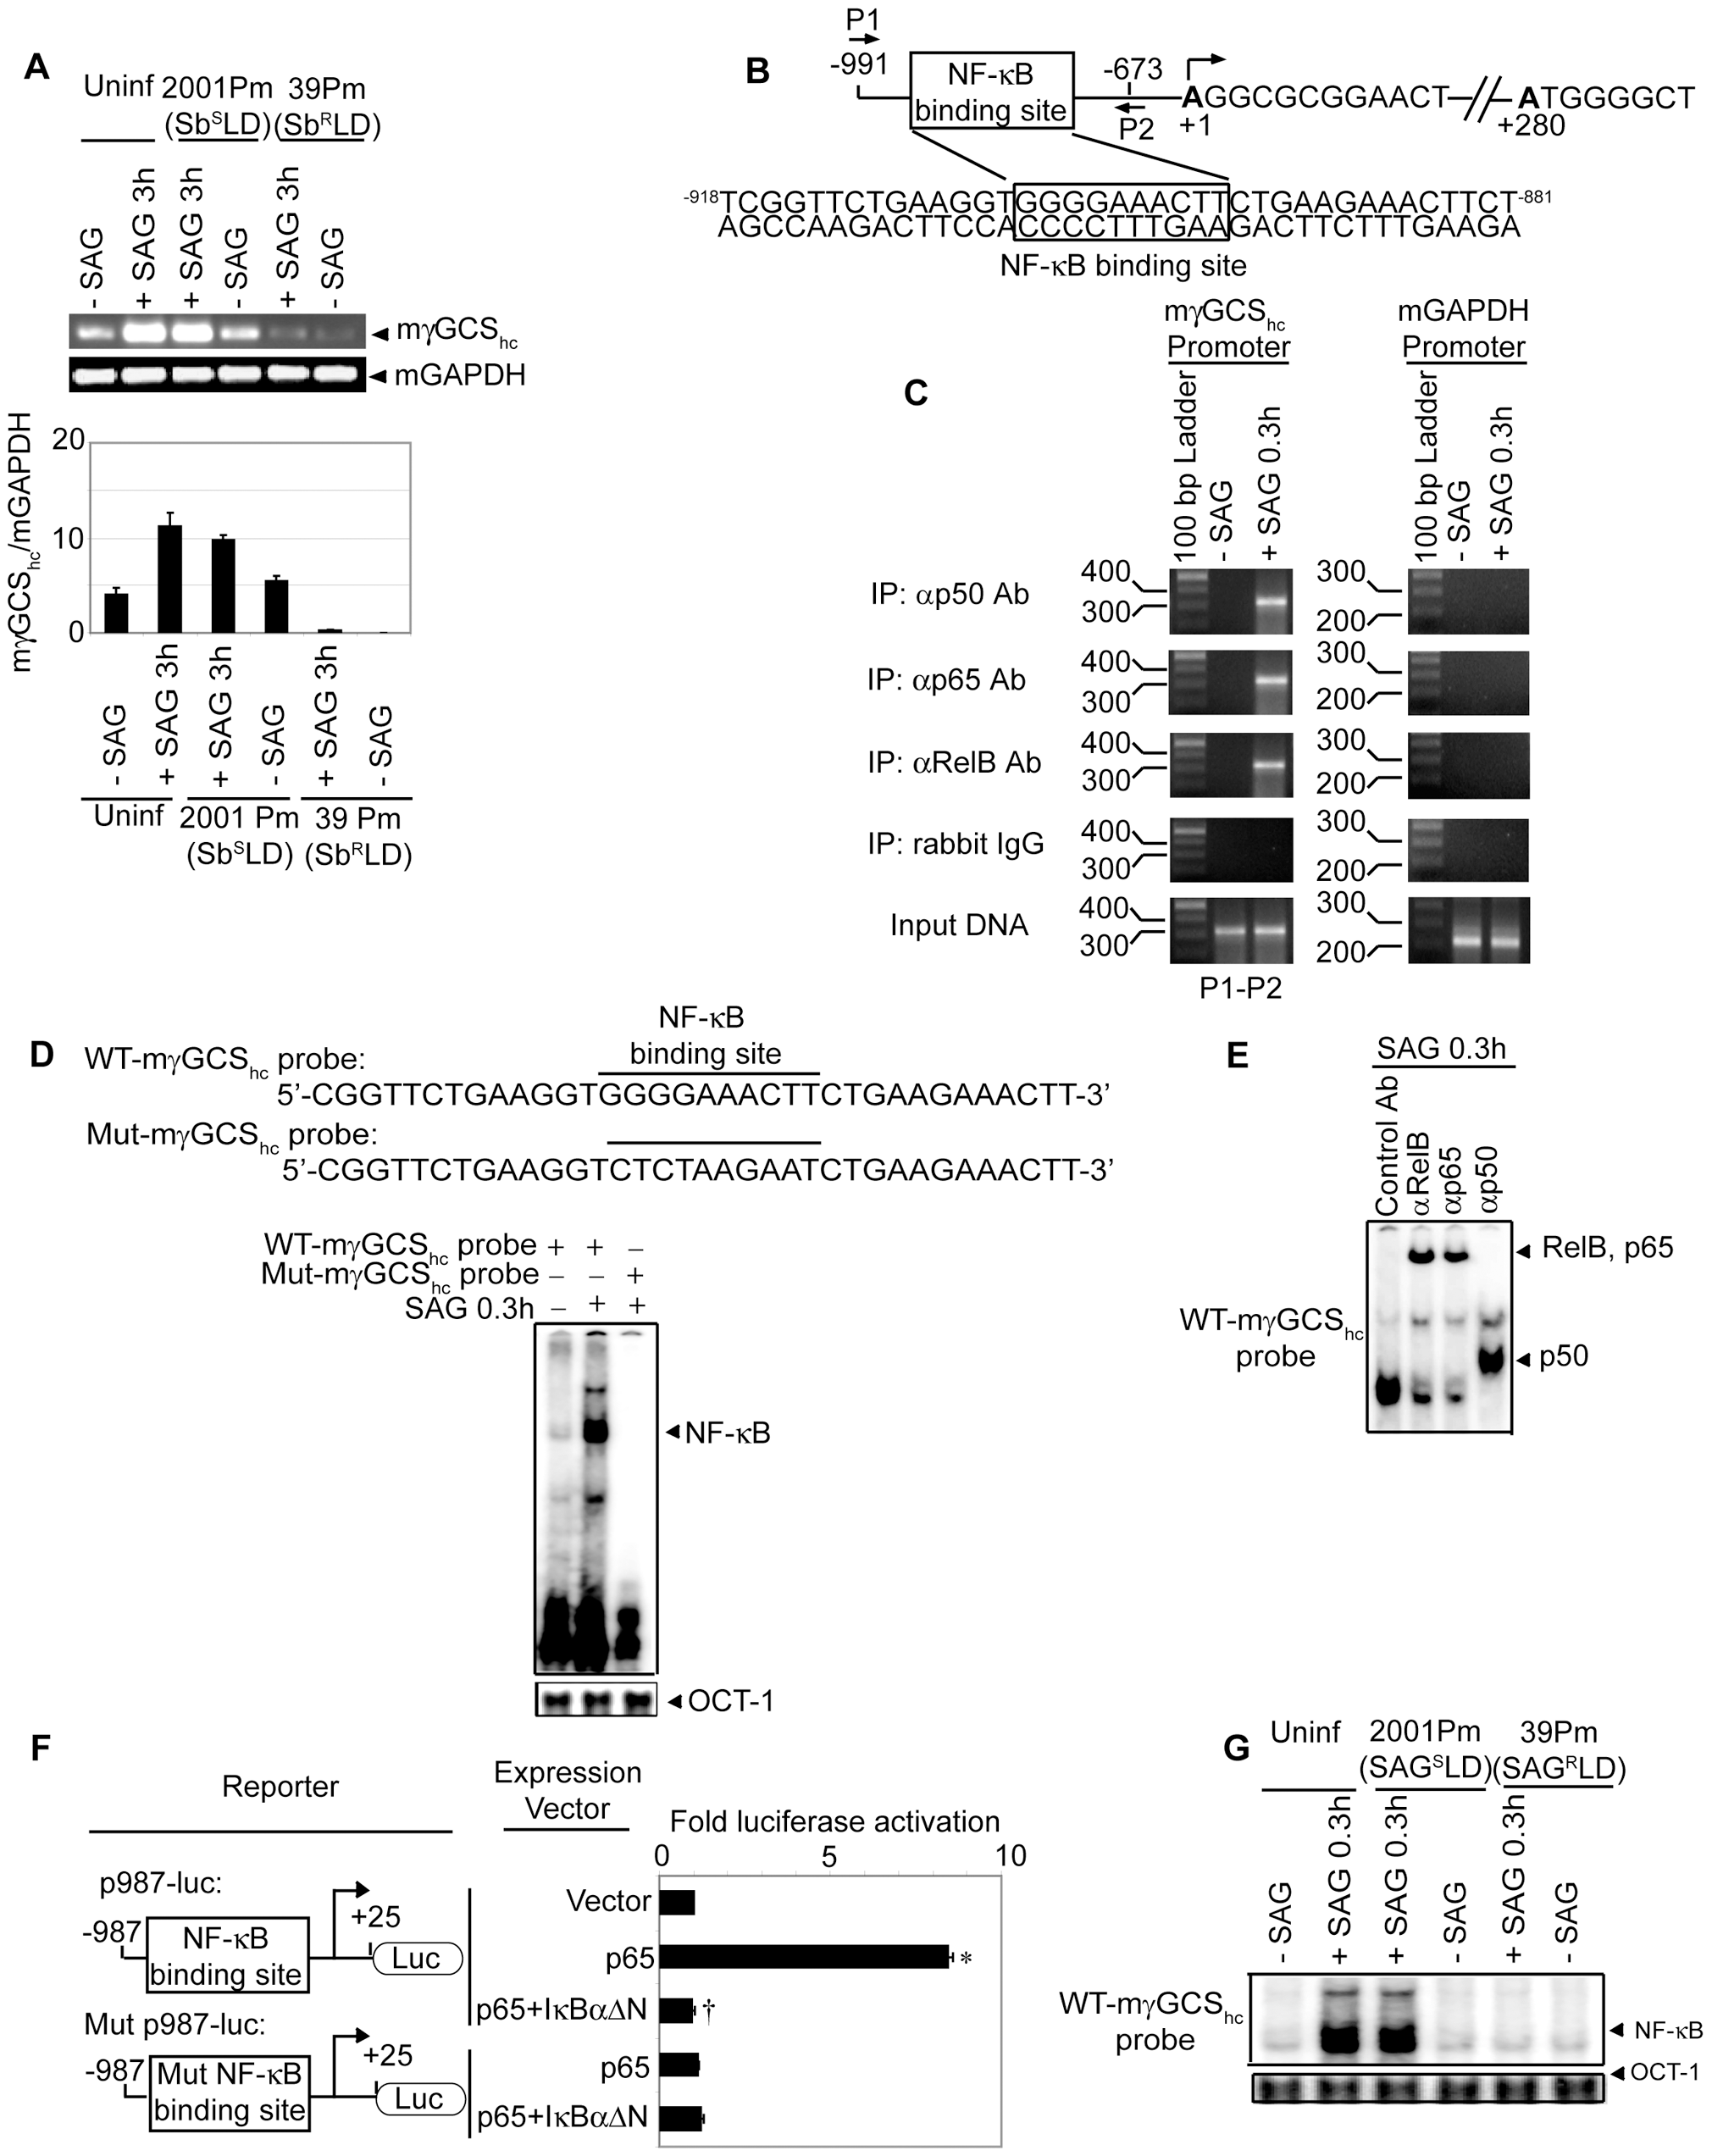 Suppression of SAG-induced mγGCS<sub>hc</sub> expression by Sb<sup>R</sup>LD is NF-κB-dependent.